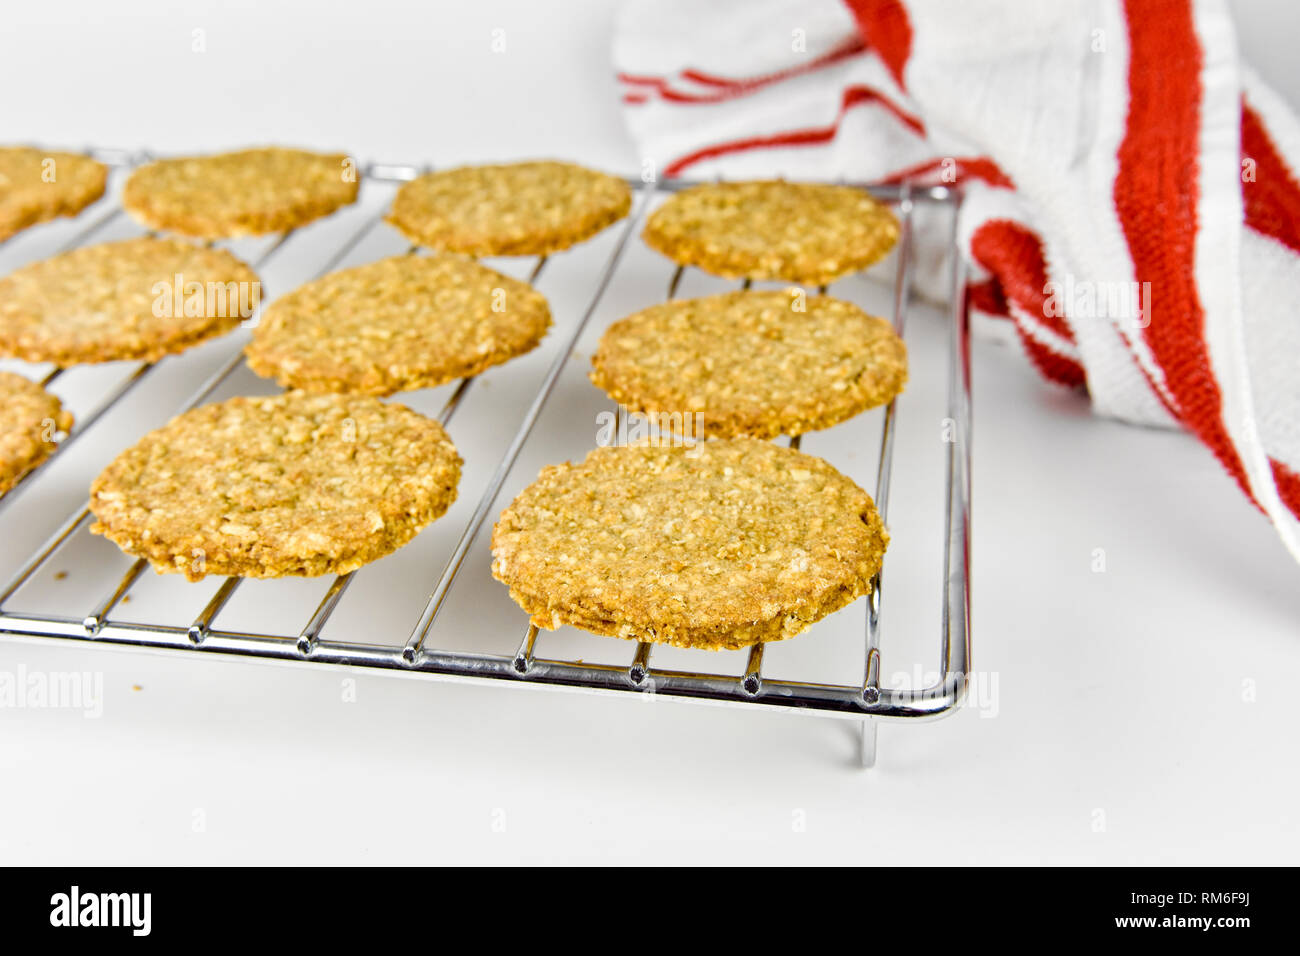 Freshly baked homemade digestive biscuits on cooling rack - Stock Image